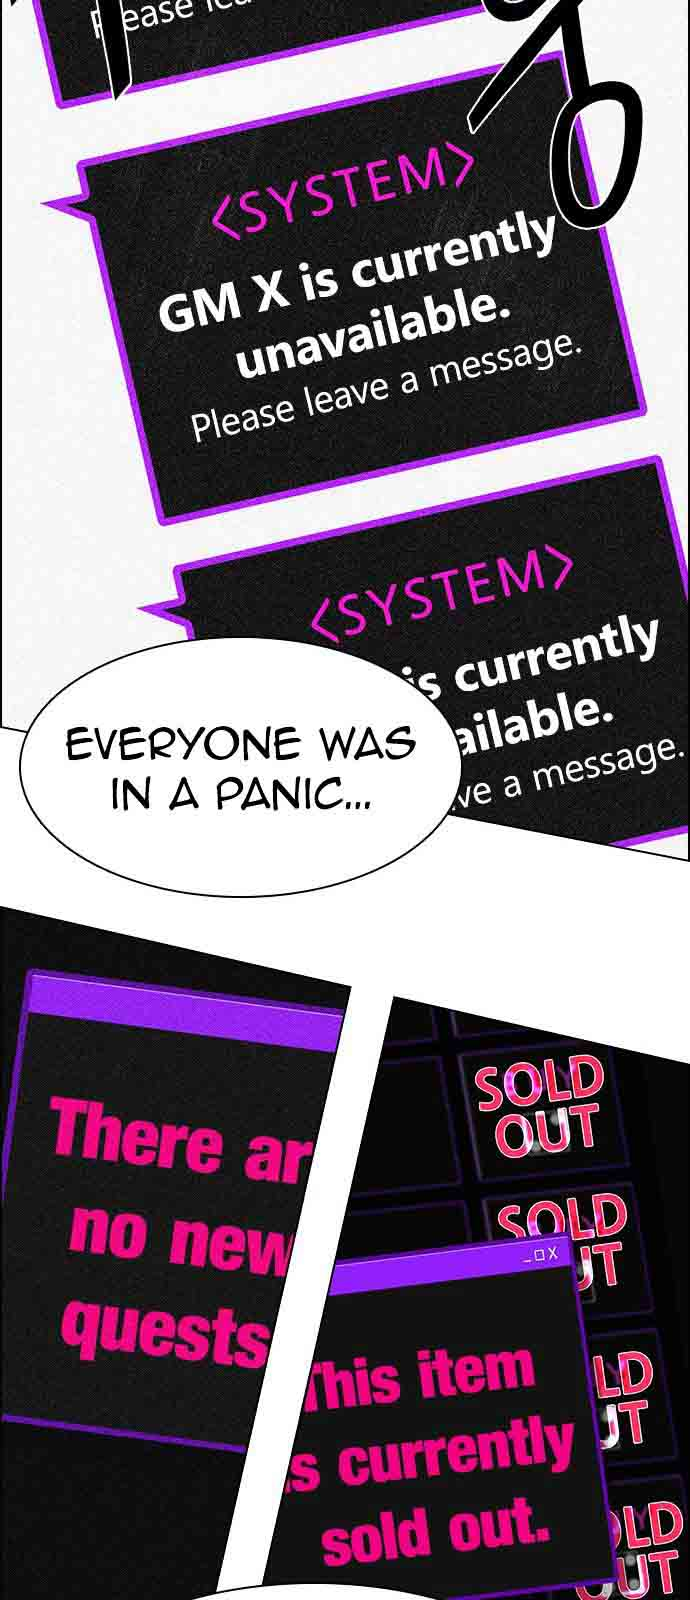 dice_the_cube_that_changes_everything_200_76